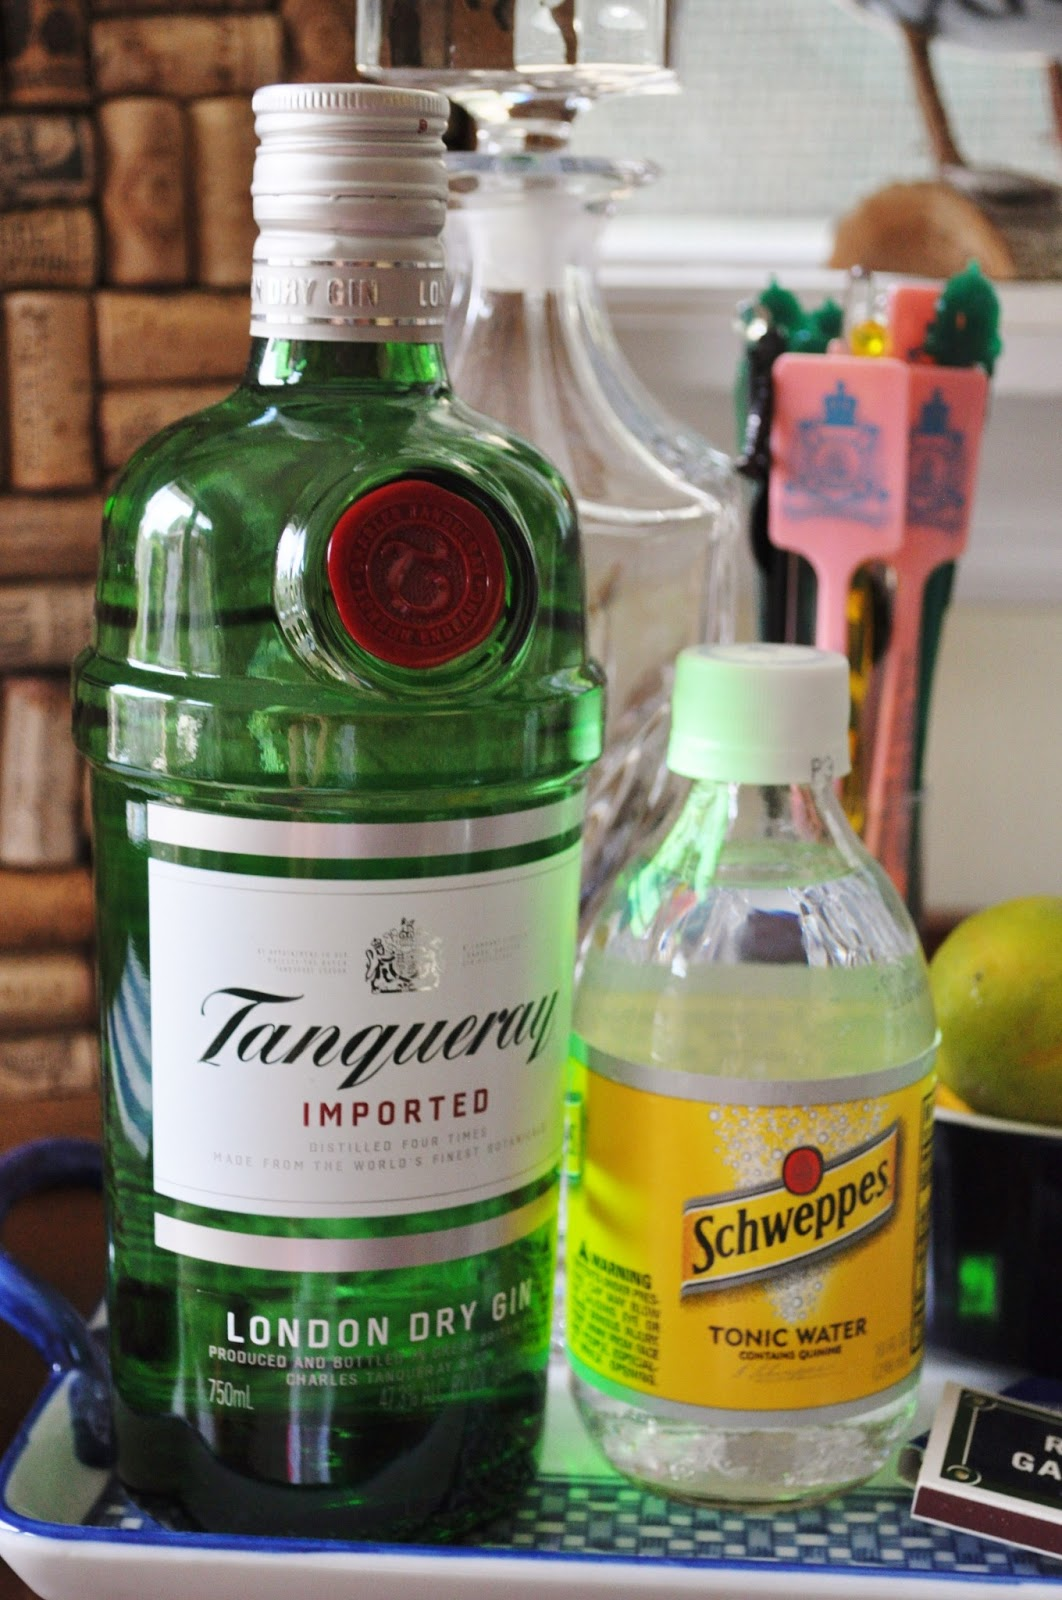 what do you mix tanqueray with